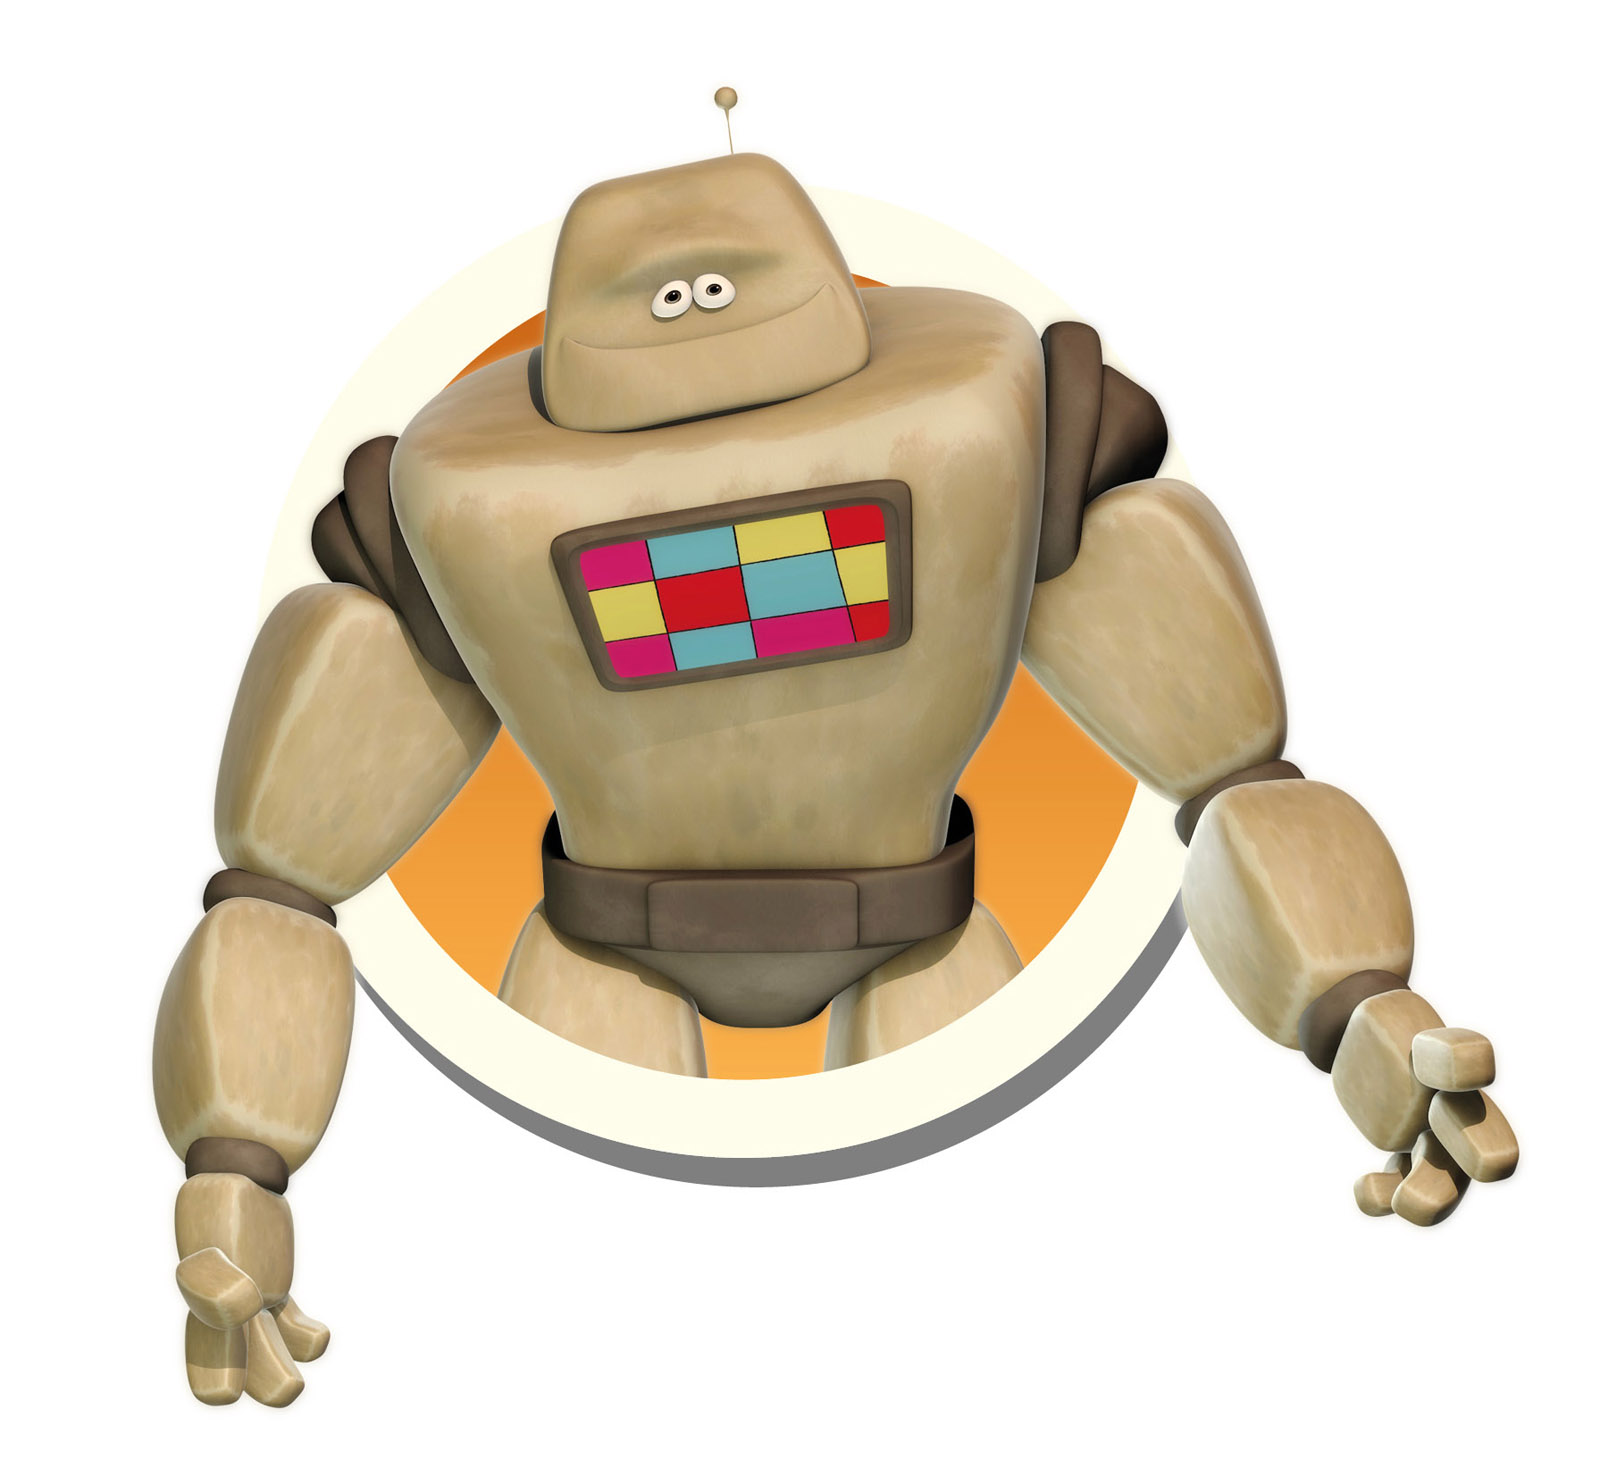 Robot children's cartoon character